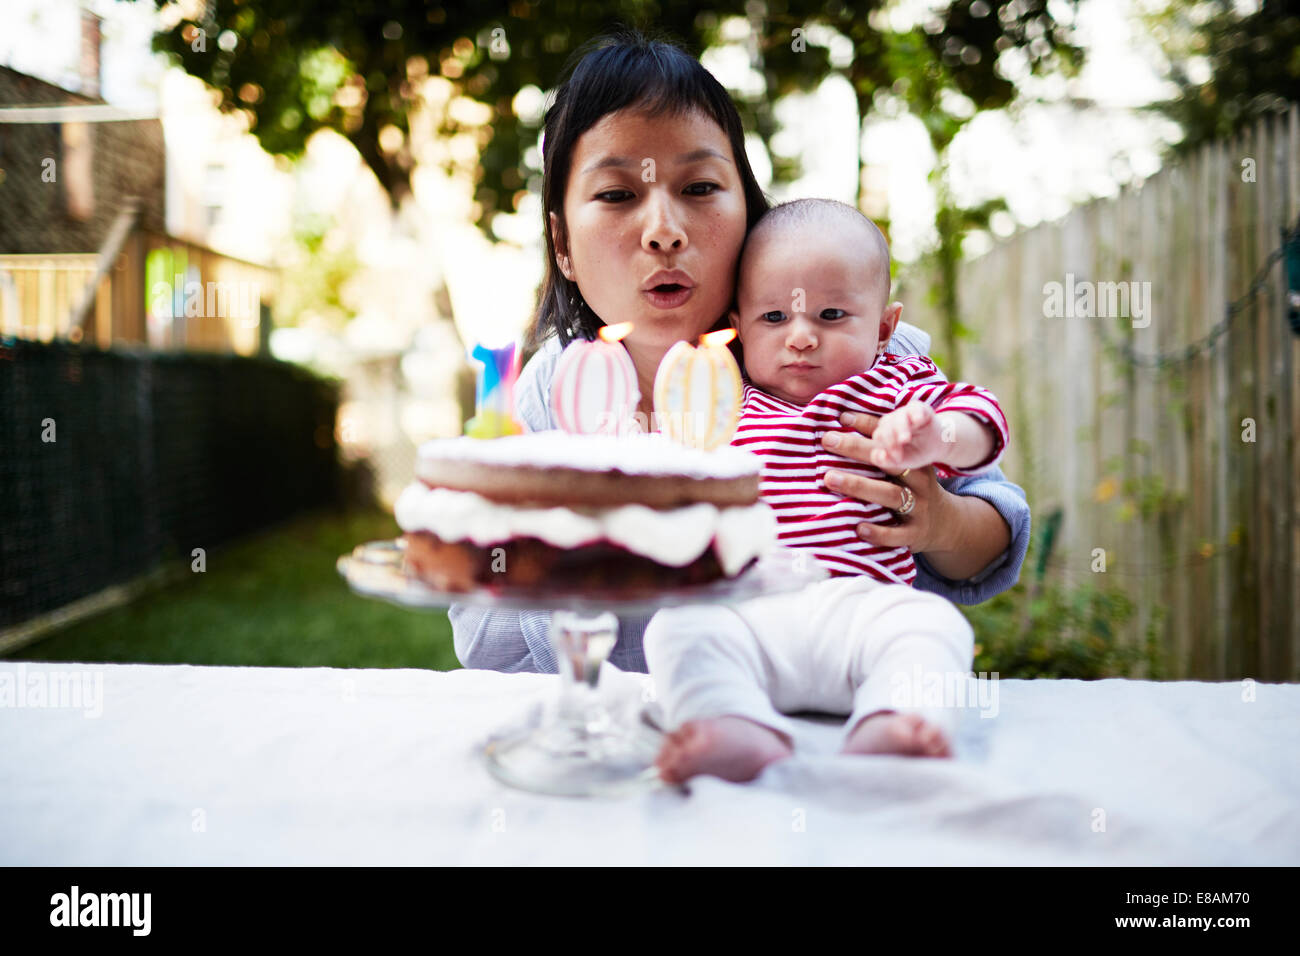 Mother holding baby fils, blowing out candles on cake Photo Stock